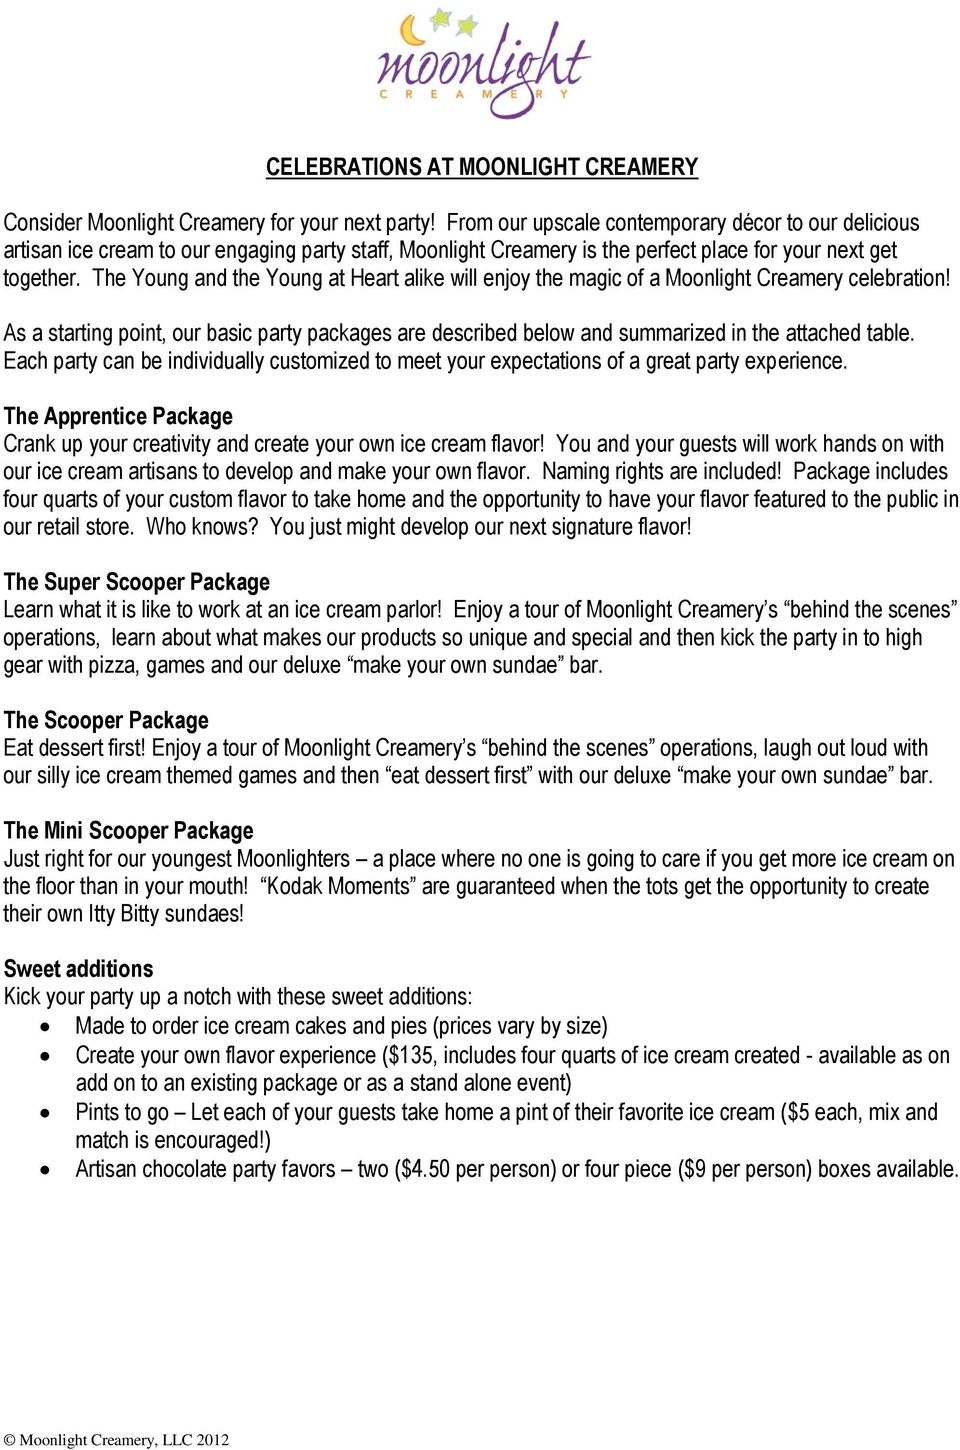 The Young and the Young at Heart alike will enjoy the magic of a Moonlight Creamery celebration! As a starting point, our basic party packages are described below and summarized in the attached table.